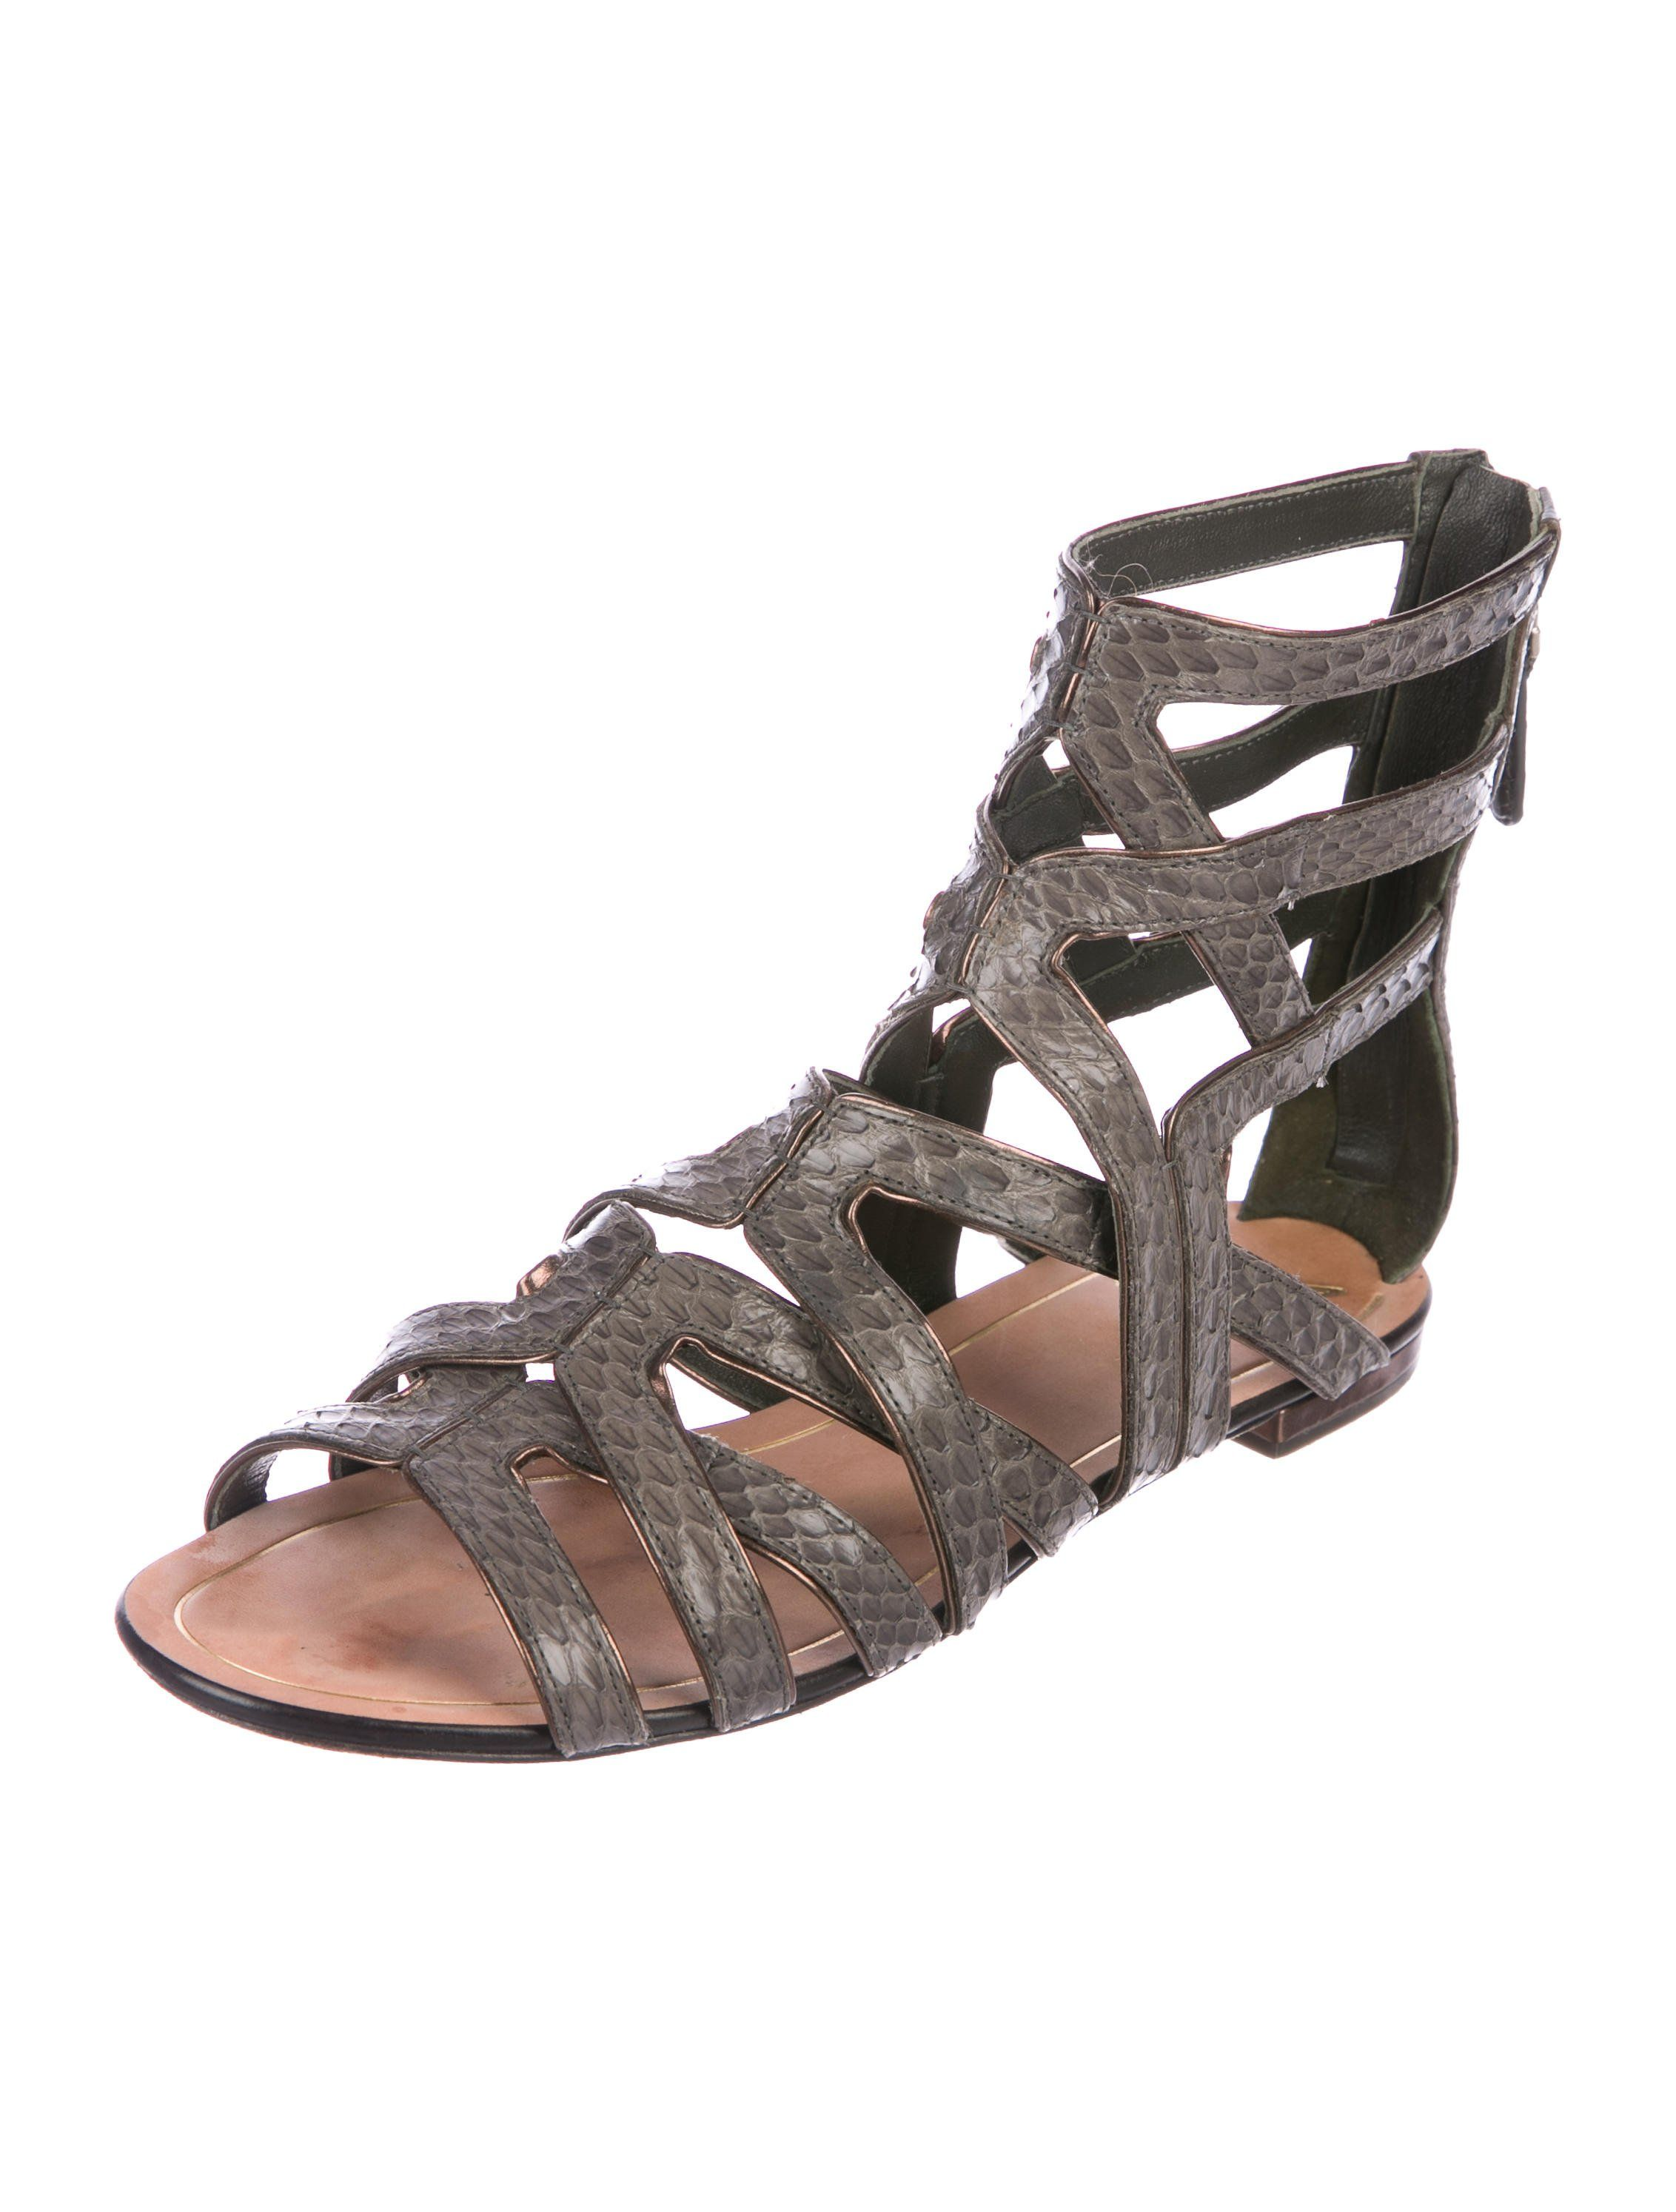 348c897287ac Anthracite snakeskin B Brian Atwood caged gladiator sandals with metallic  brown piping throughout